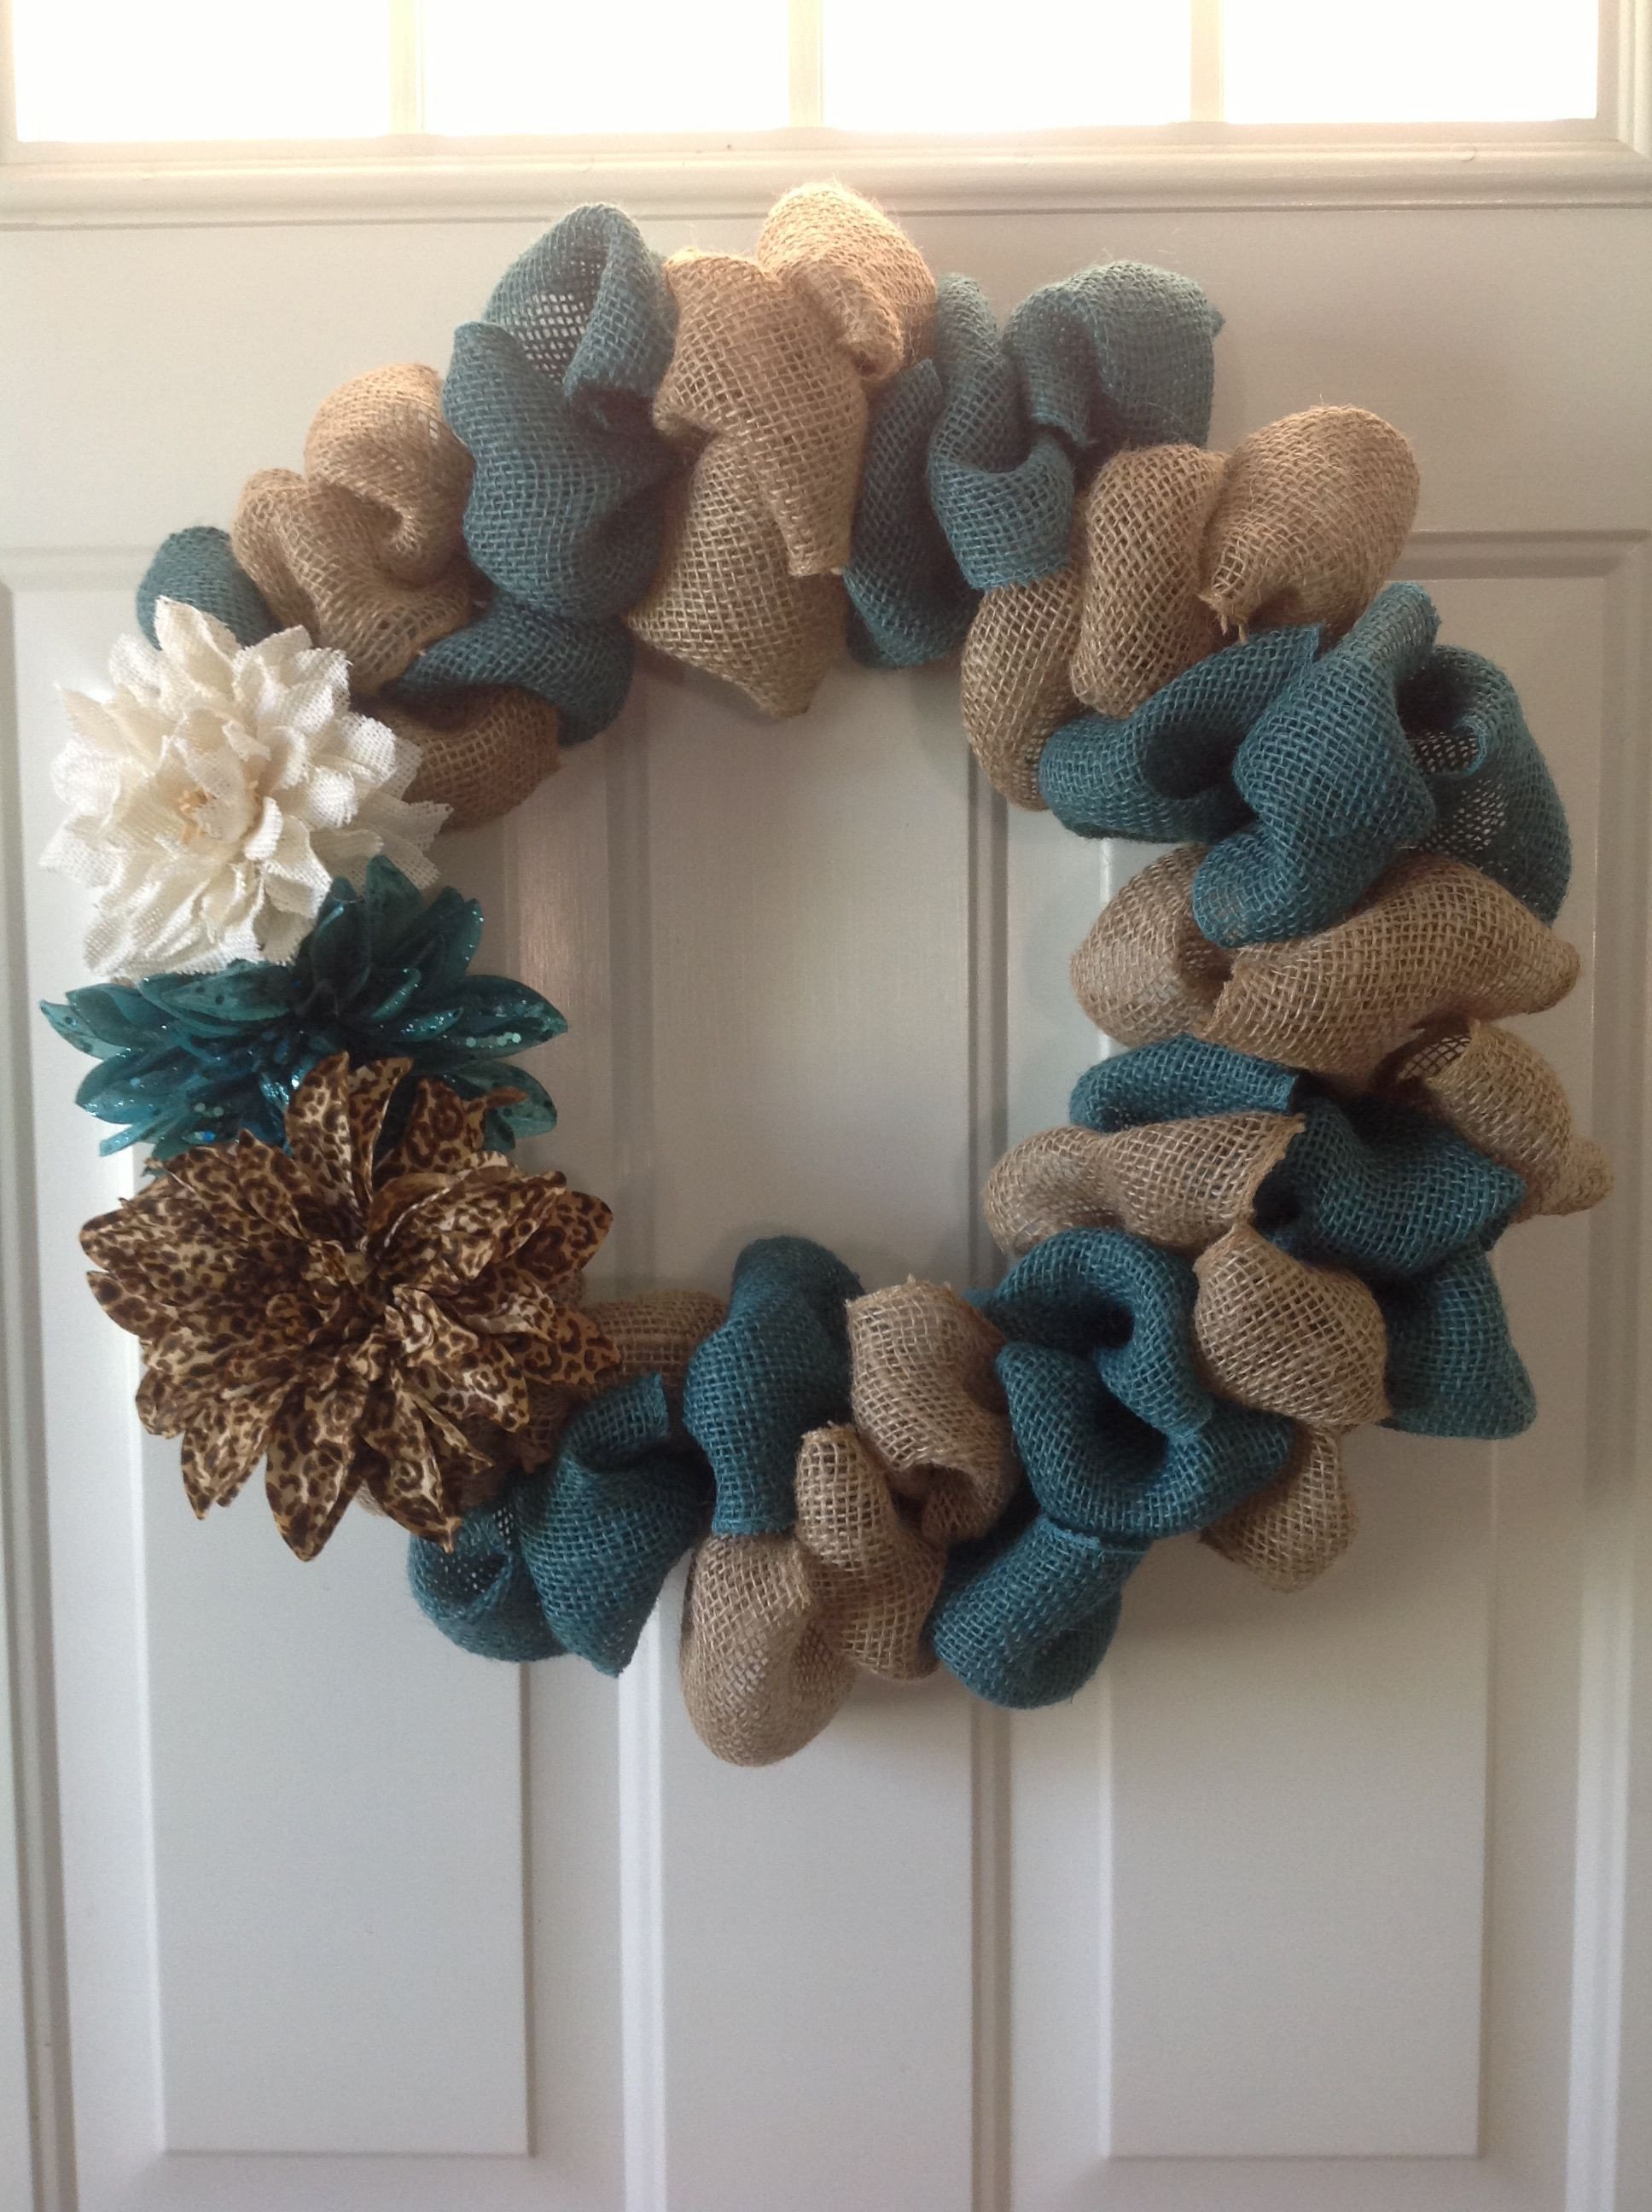 Best ideas about Burlap Wreath DIY . Save or Pin Two toned bubble burlap wreath DIY Pinterest Now.